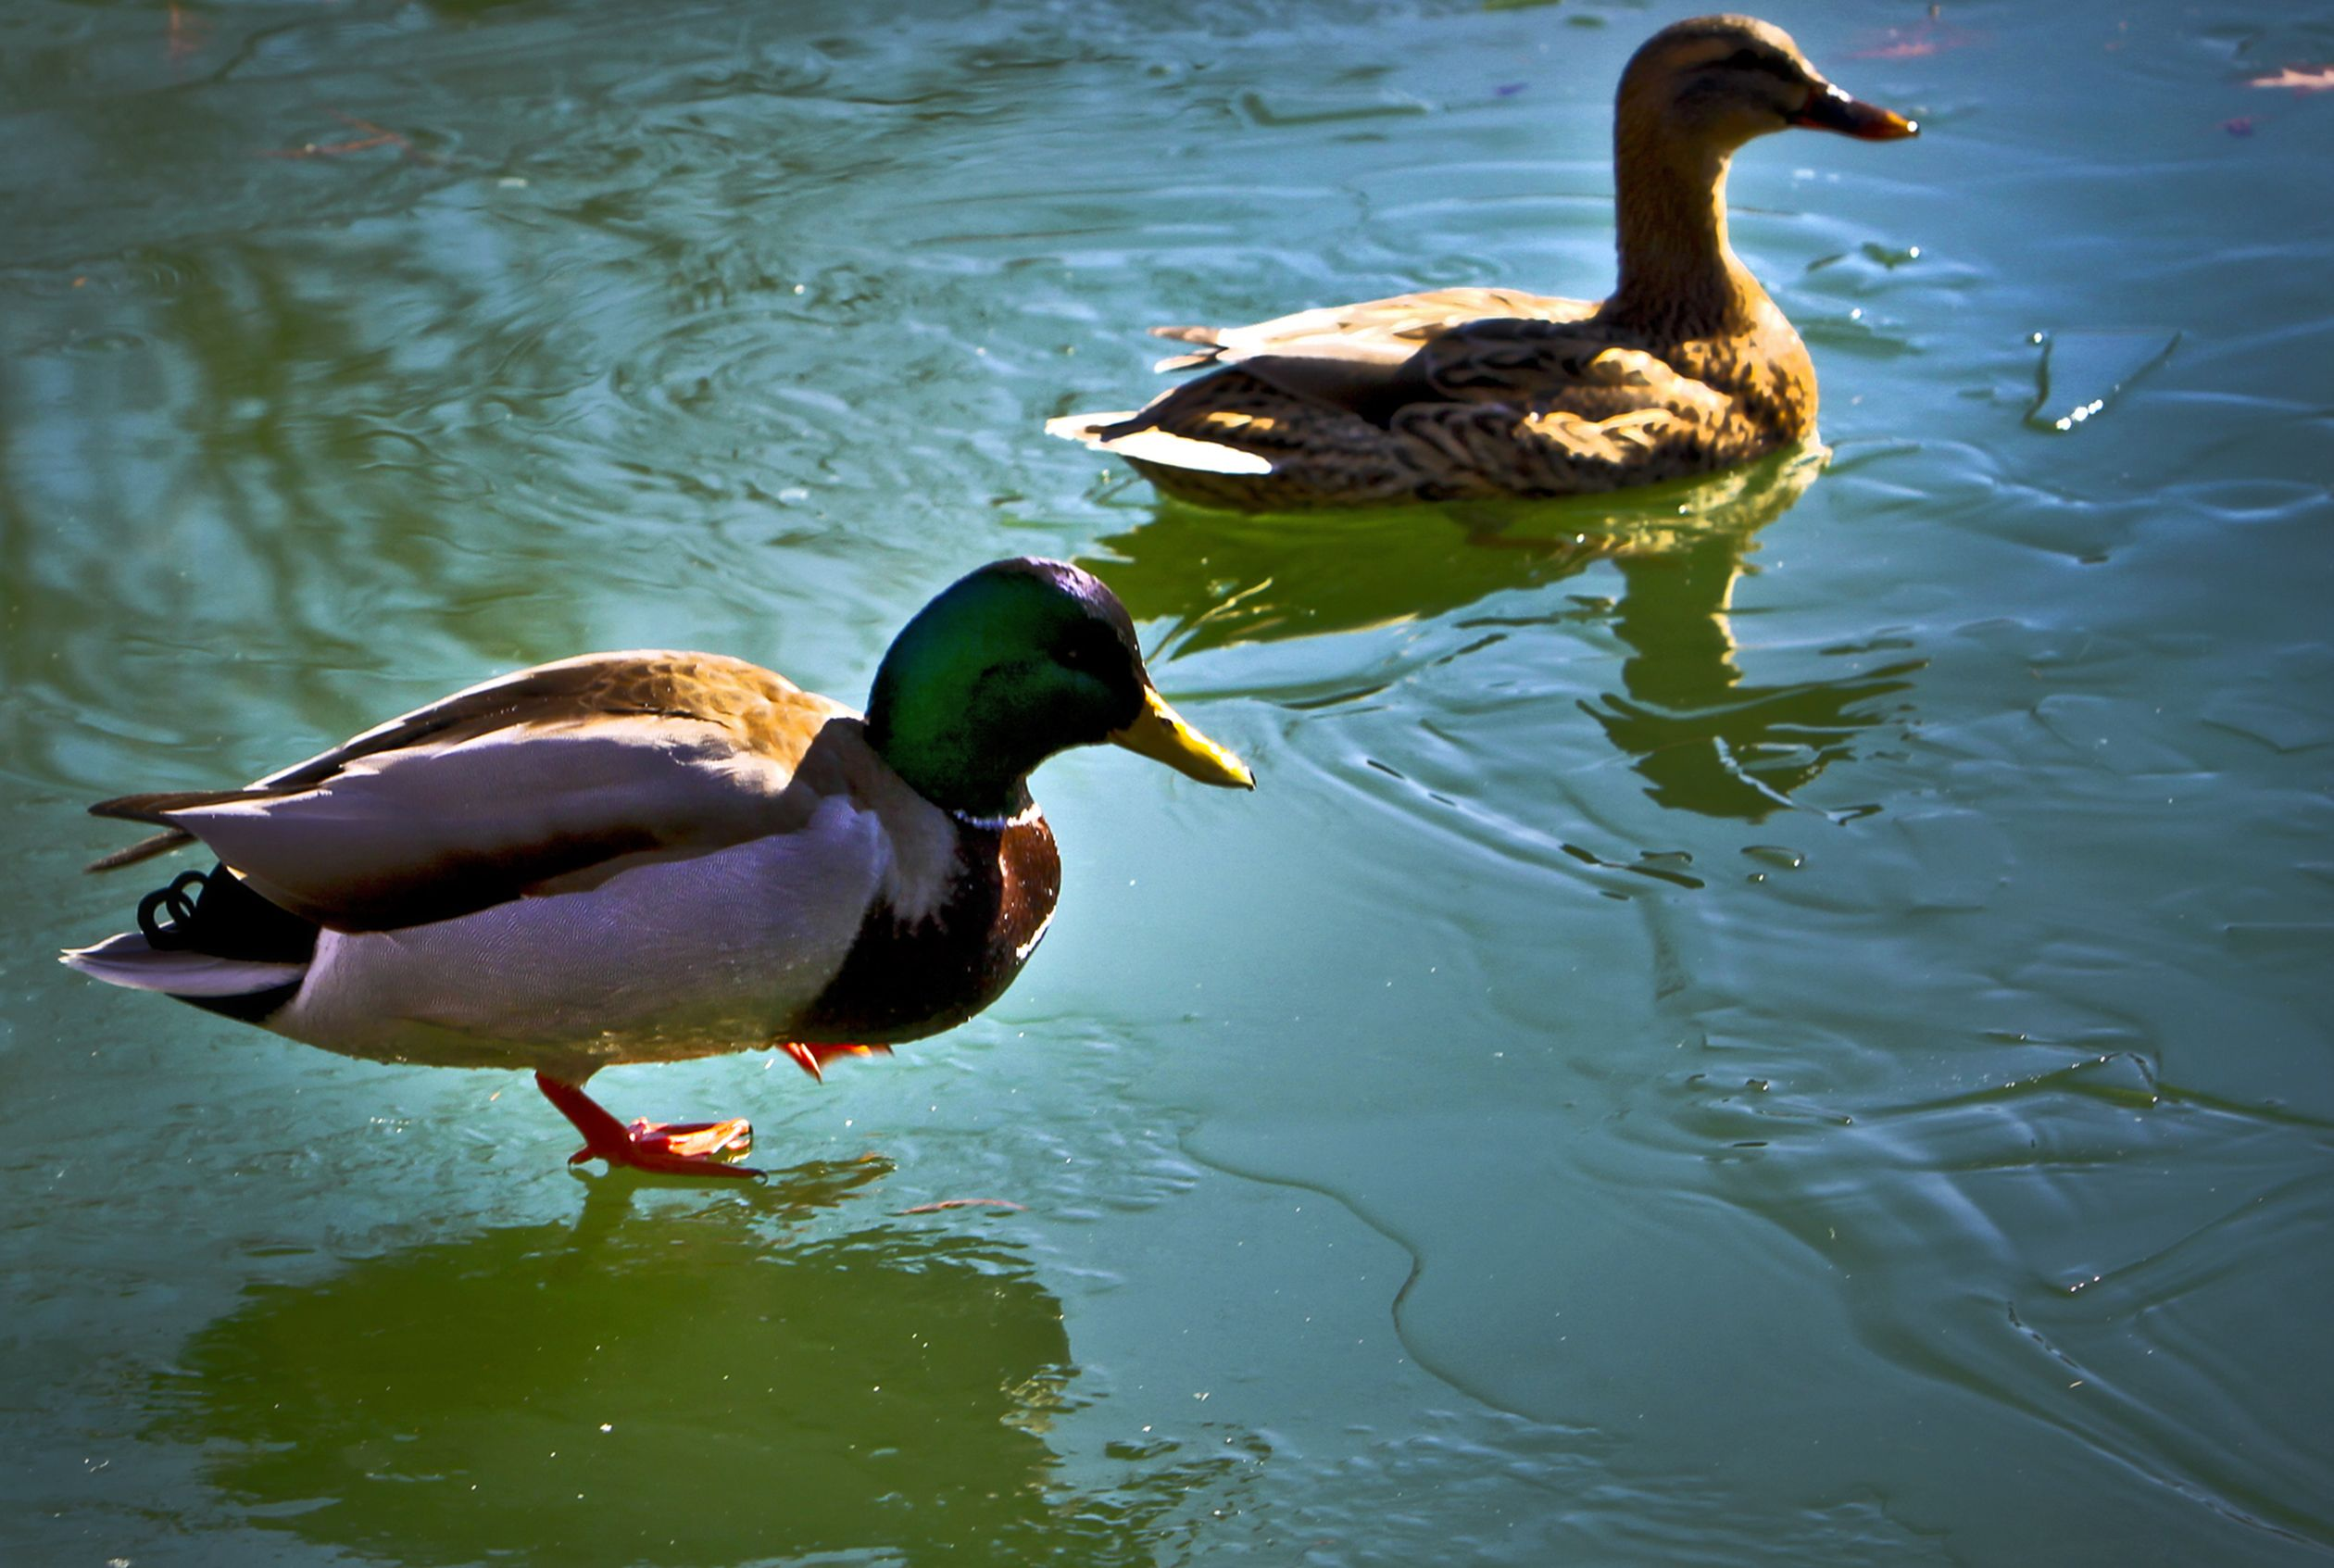 Here S Why Not To Feed Bread To Ducks And What To Feed Instead